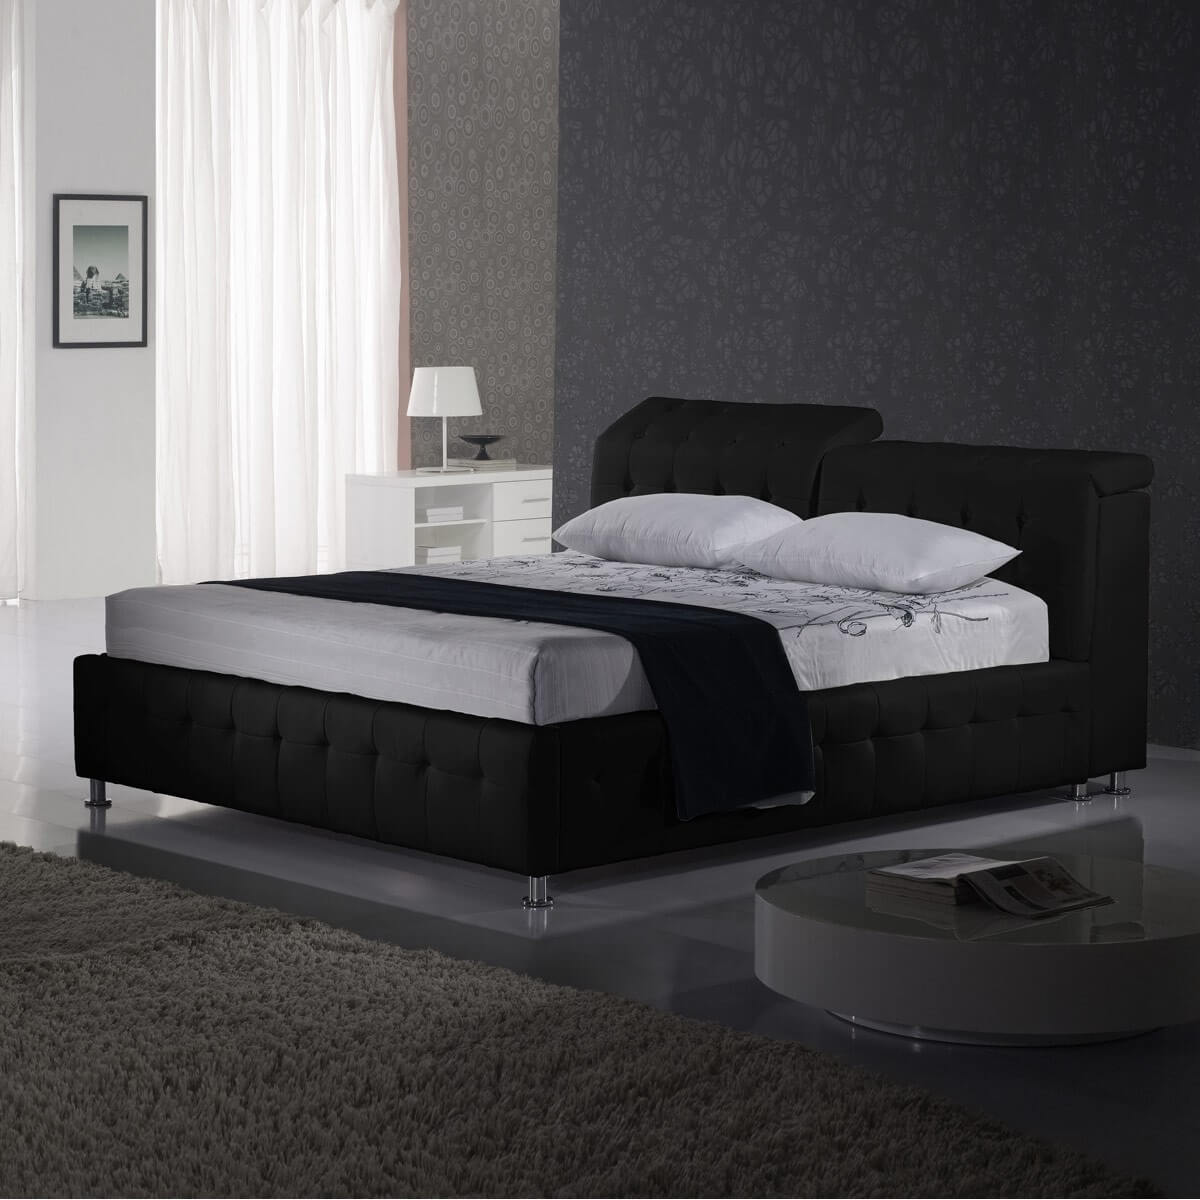 polsterbett 180x200 simple full size of betten gunstige bestellen poco schlaf bett gunstig x x. Black Bedroom Furniture Sets. Home Design Ideas